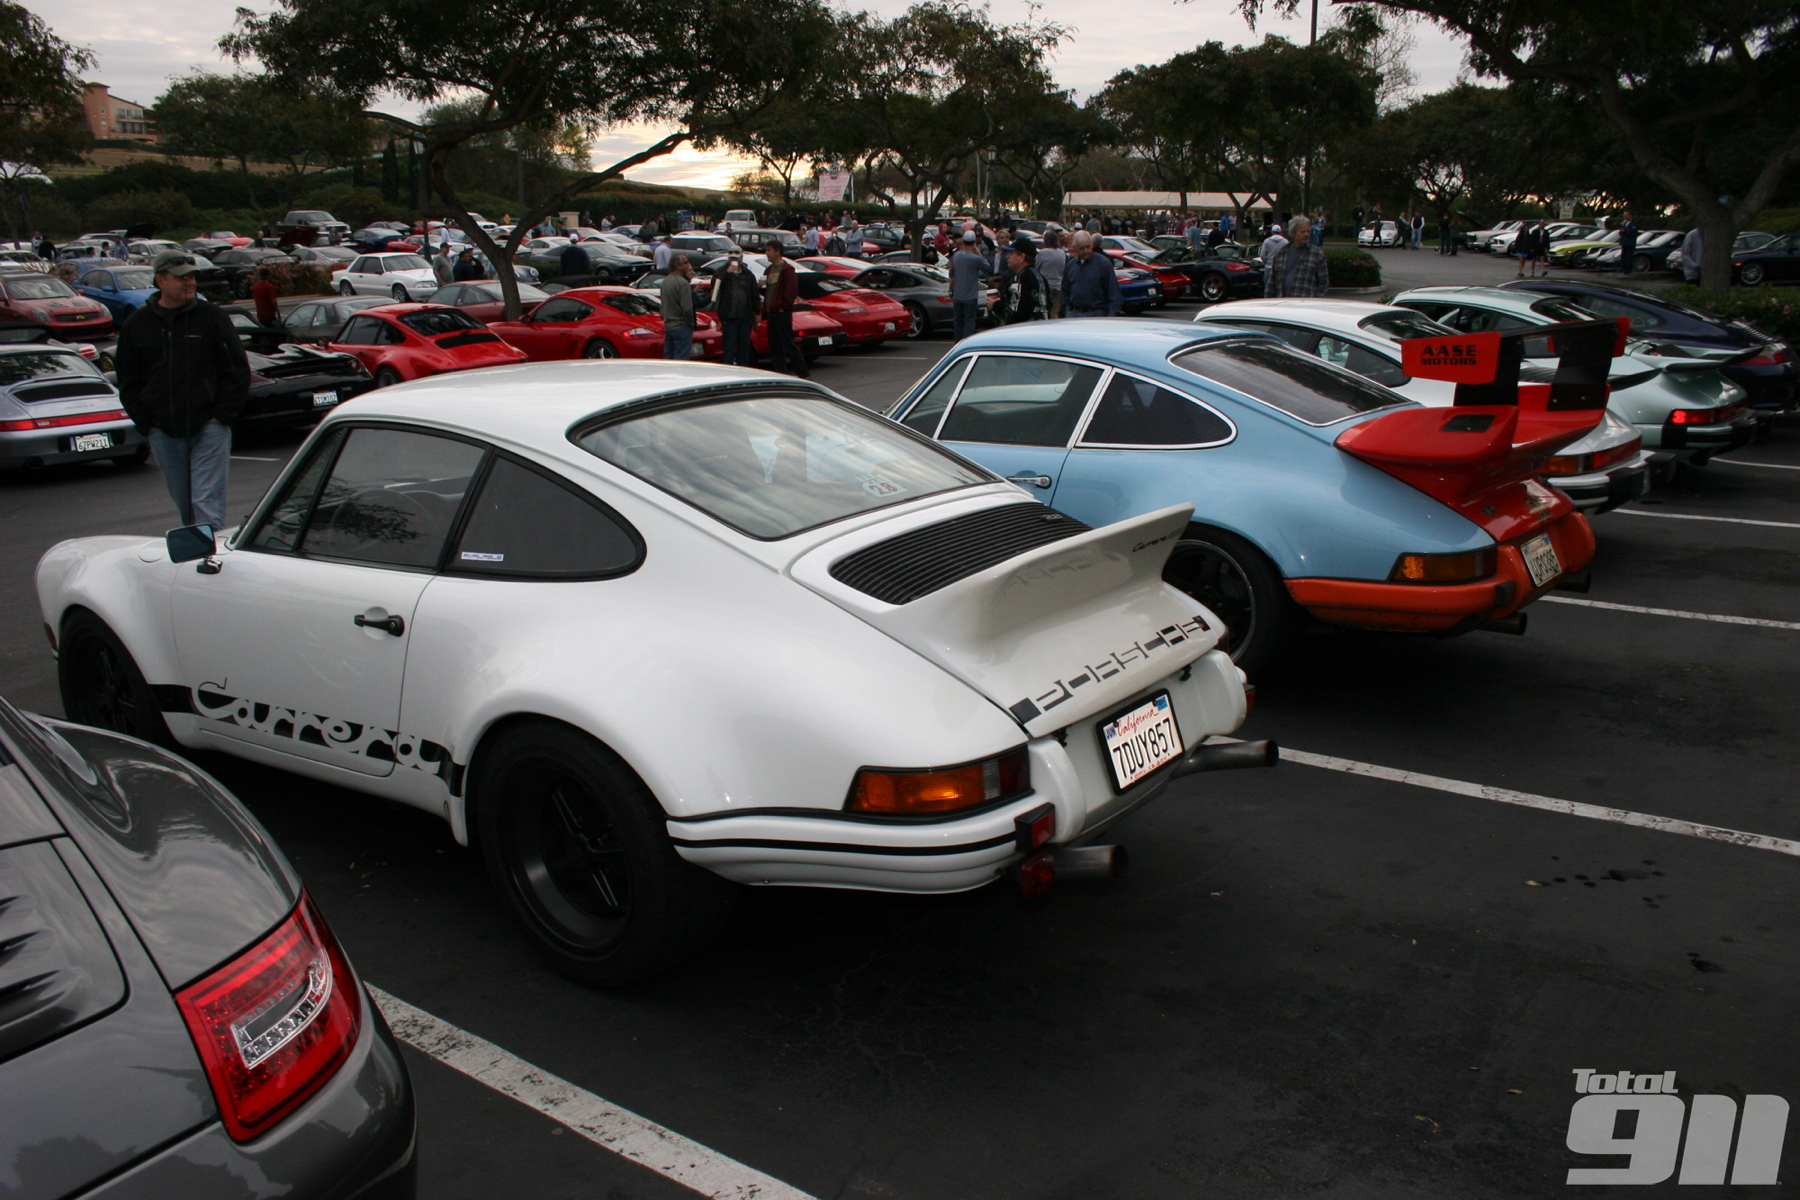 In our revamped Living the legend section, Tony McGuiness attends the famous 'Cars and Coffee' event.